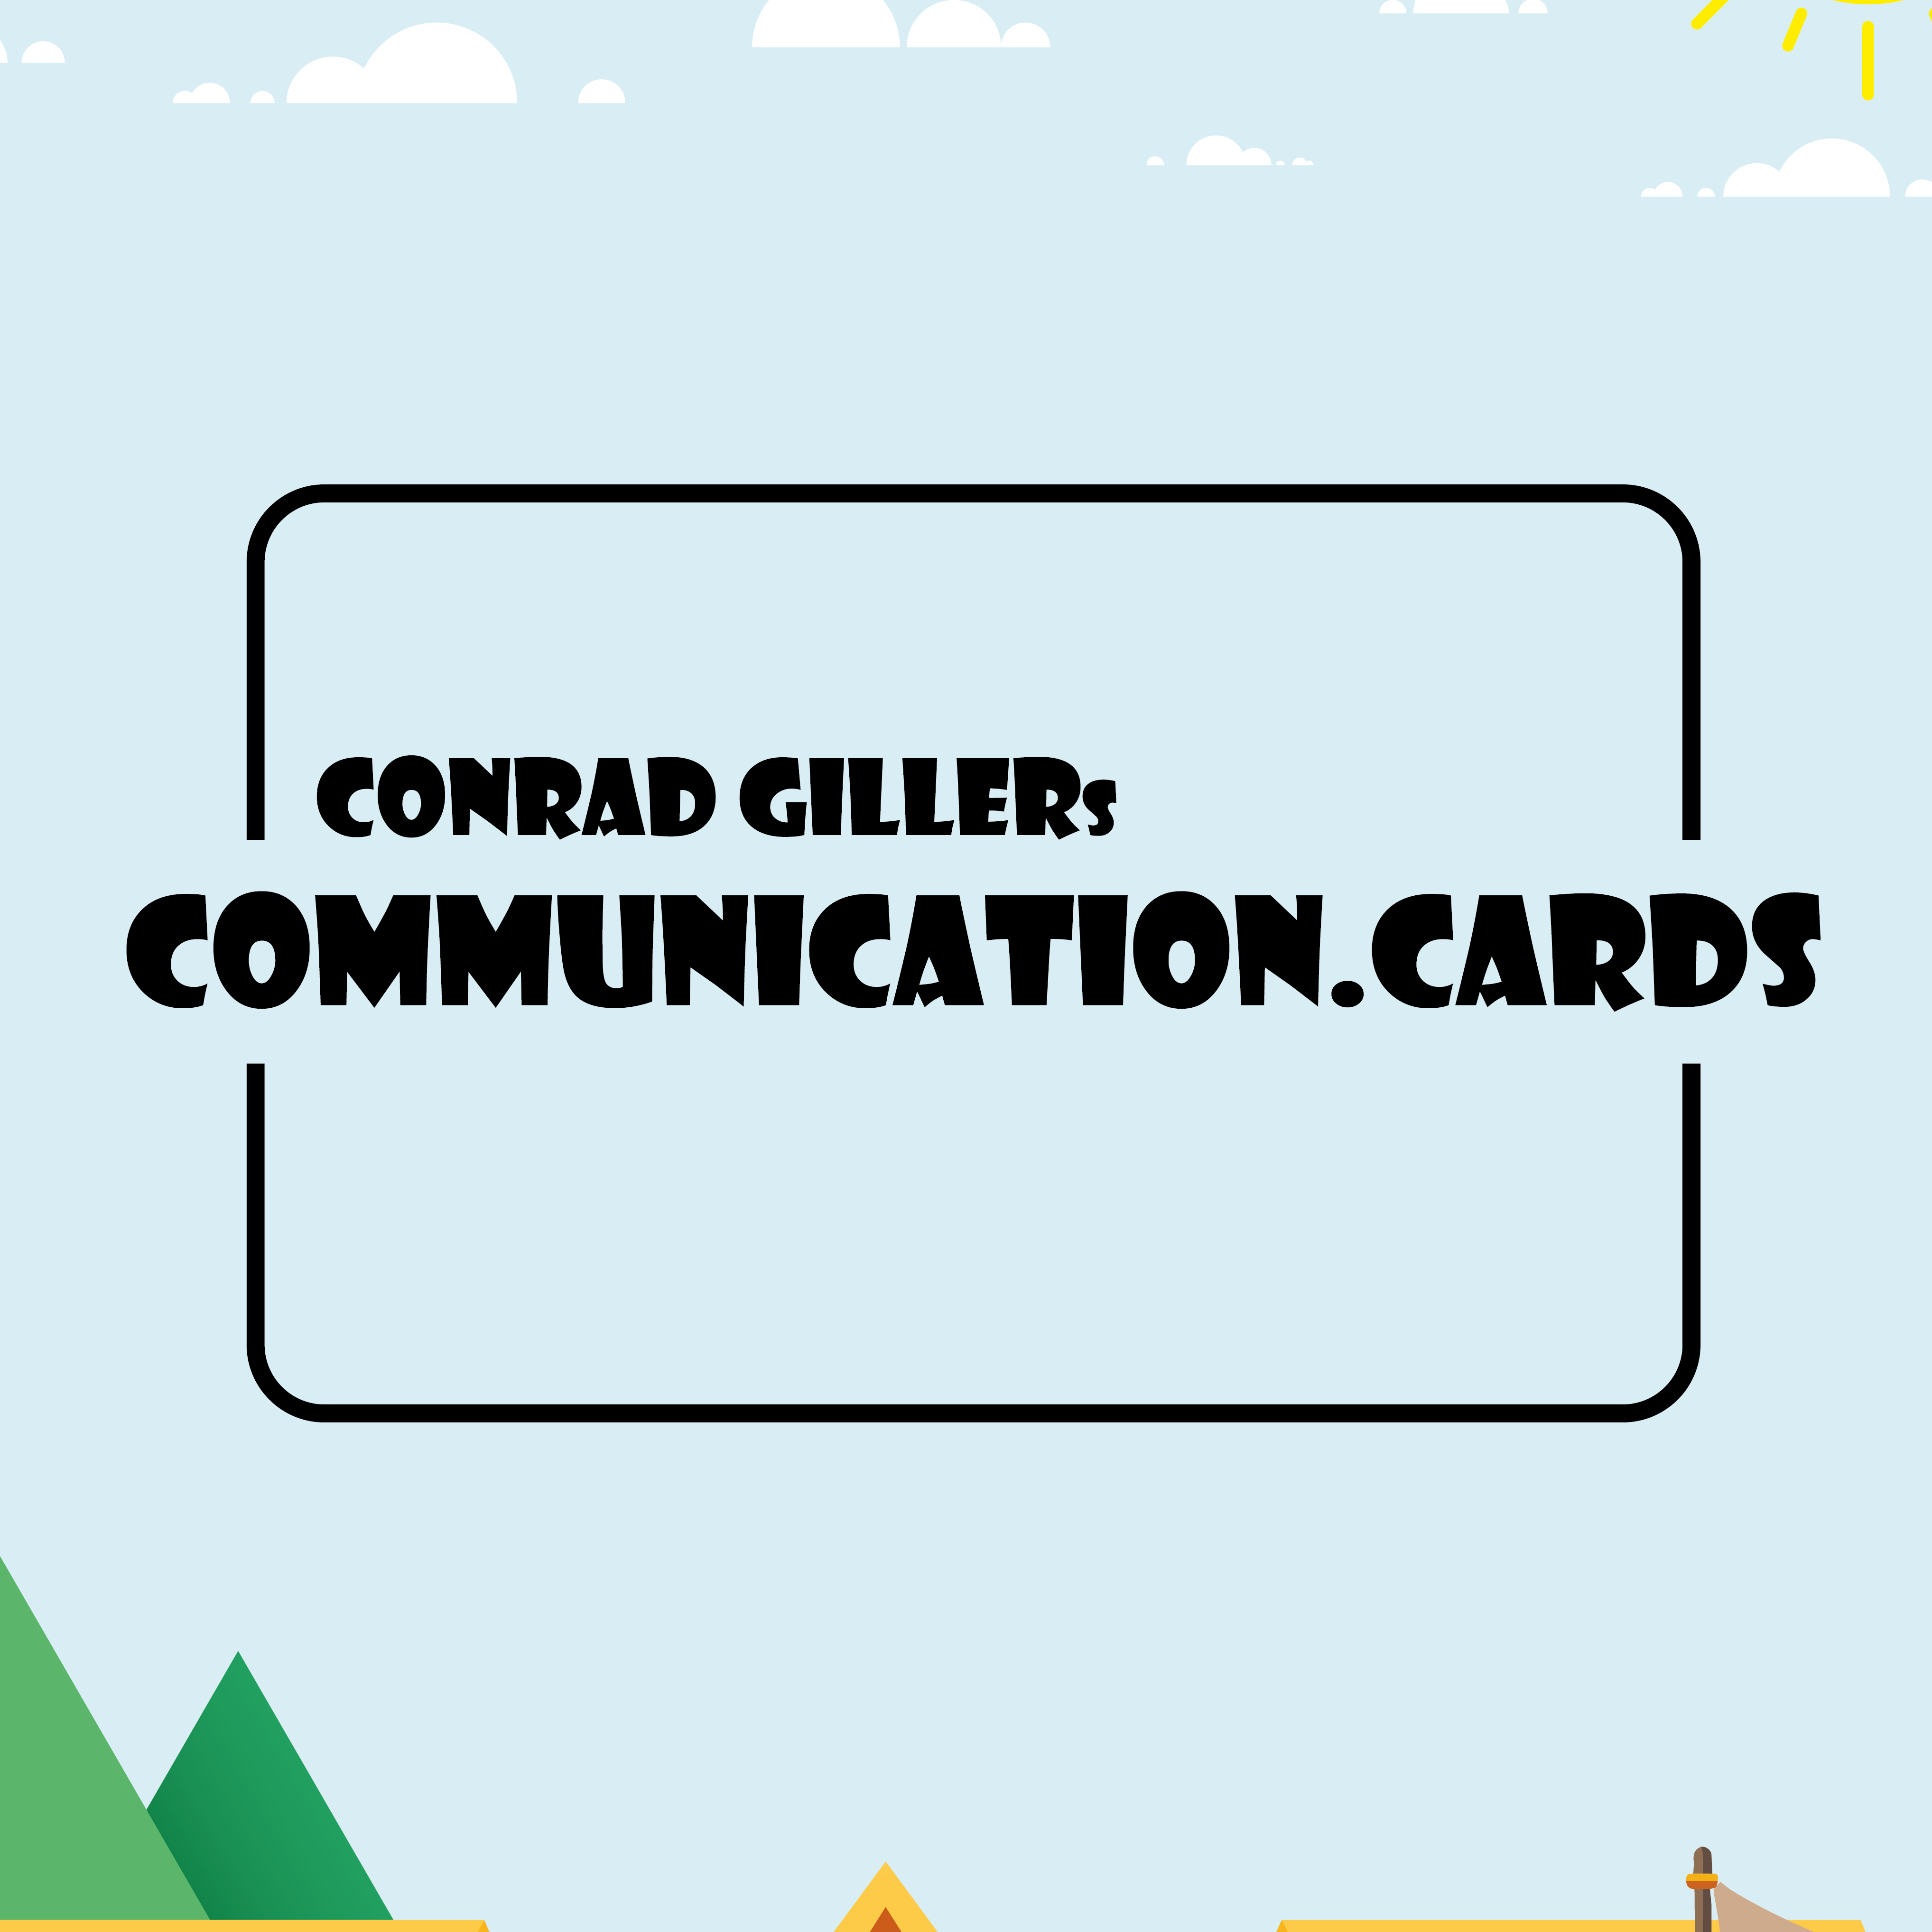 Conrad Gillers Communication Cards